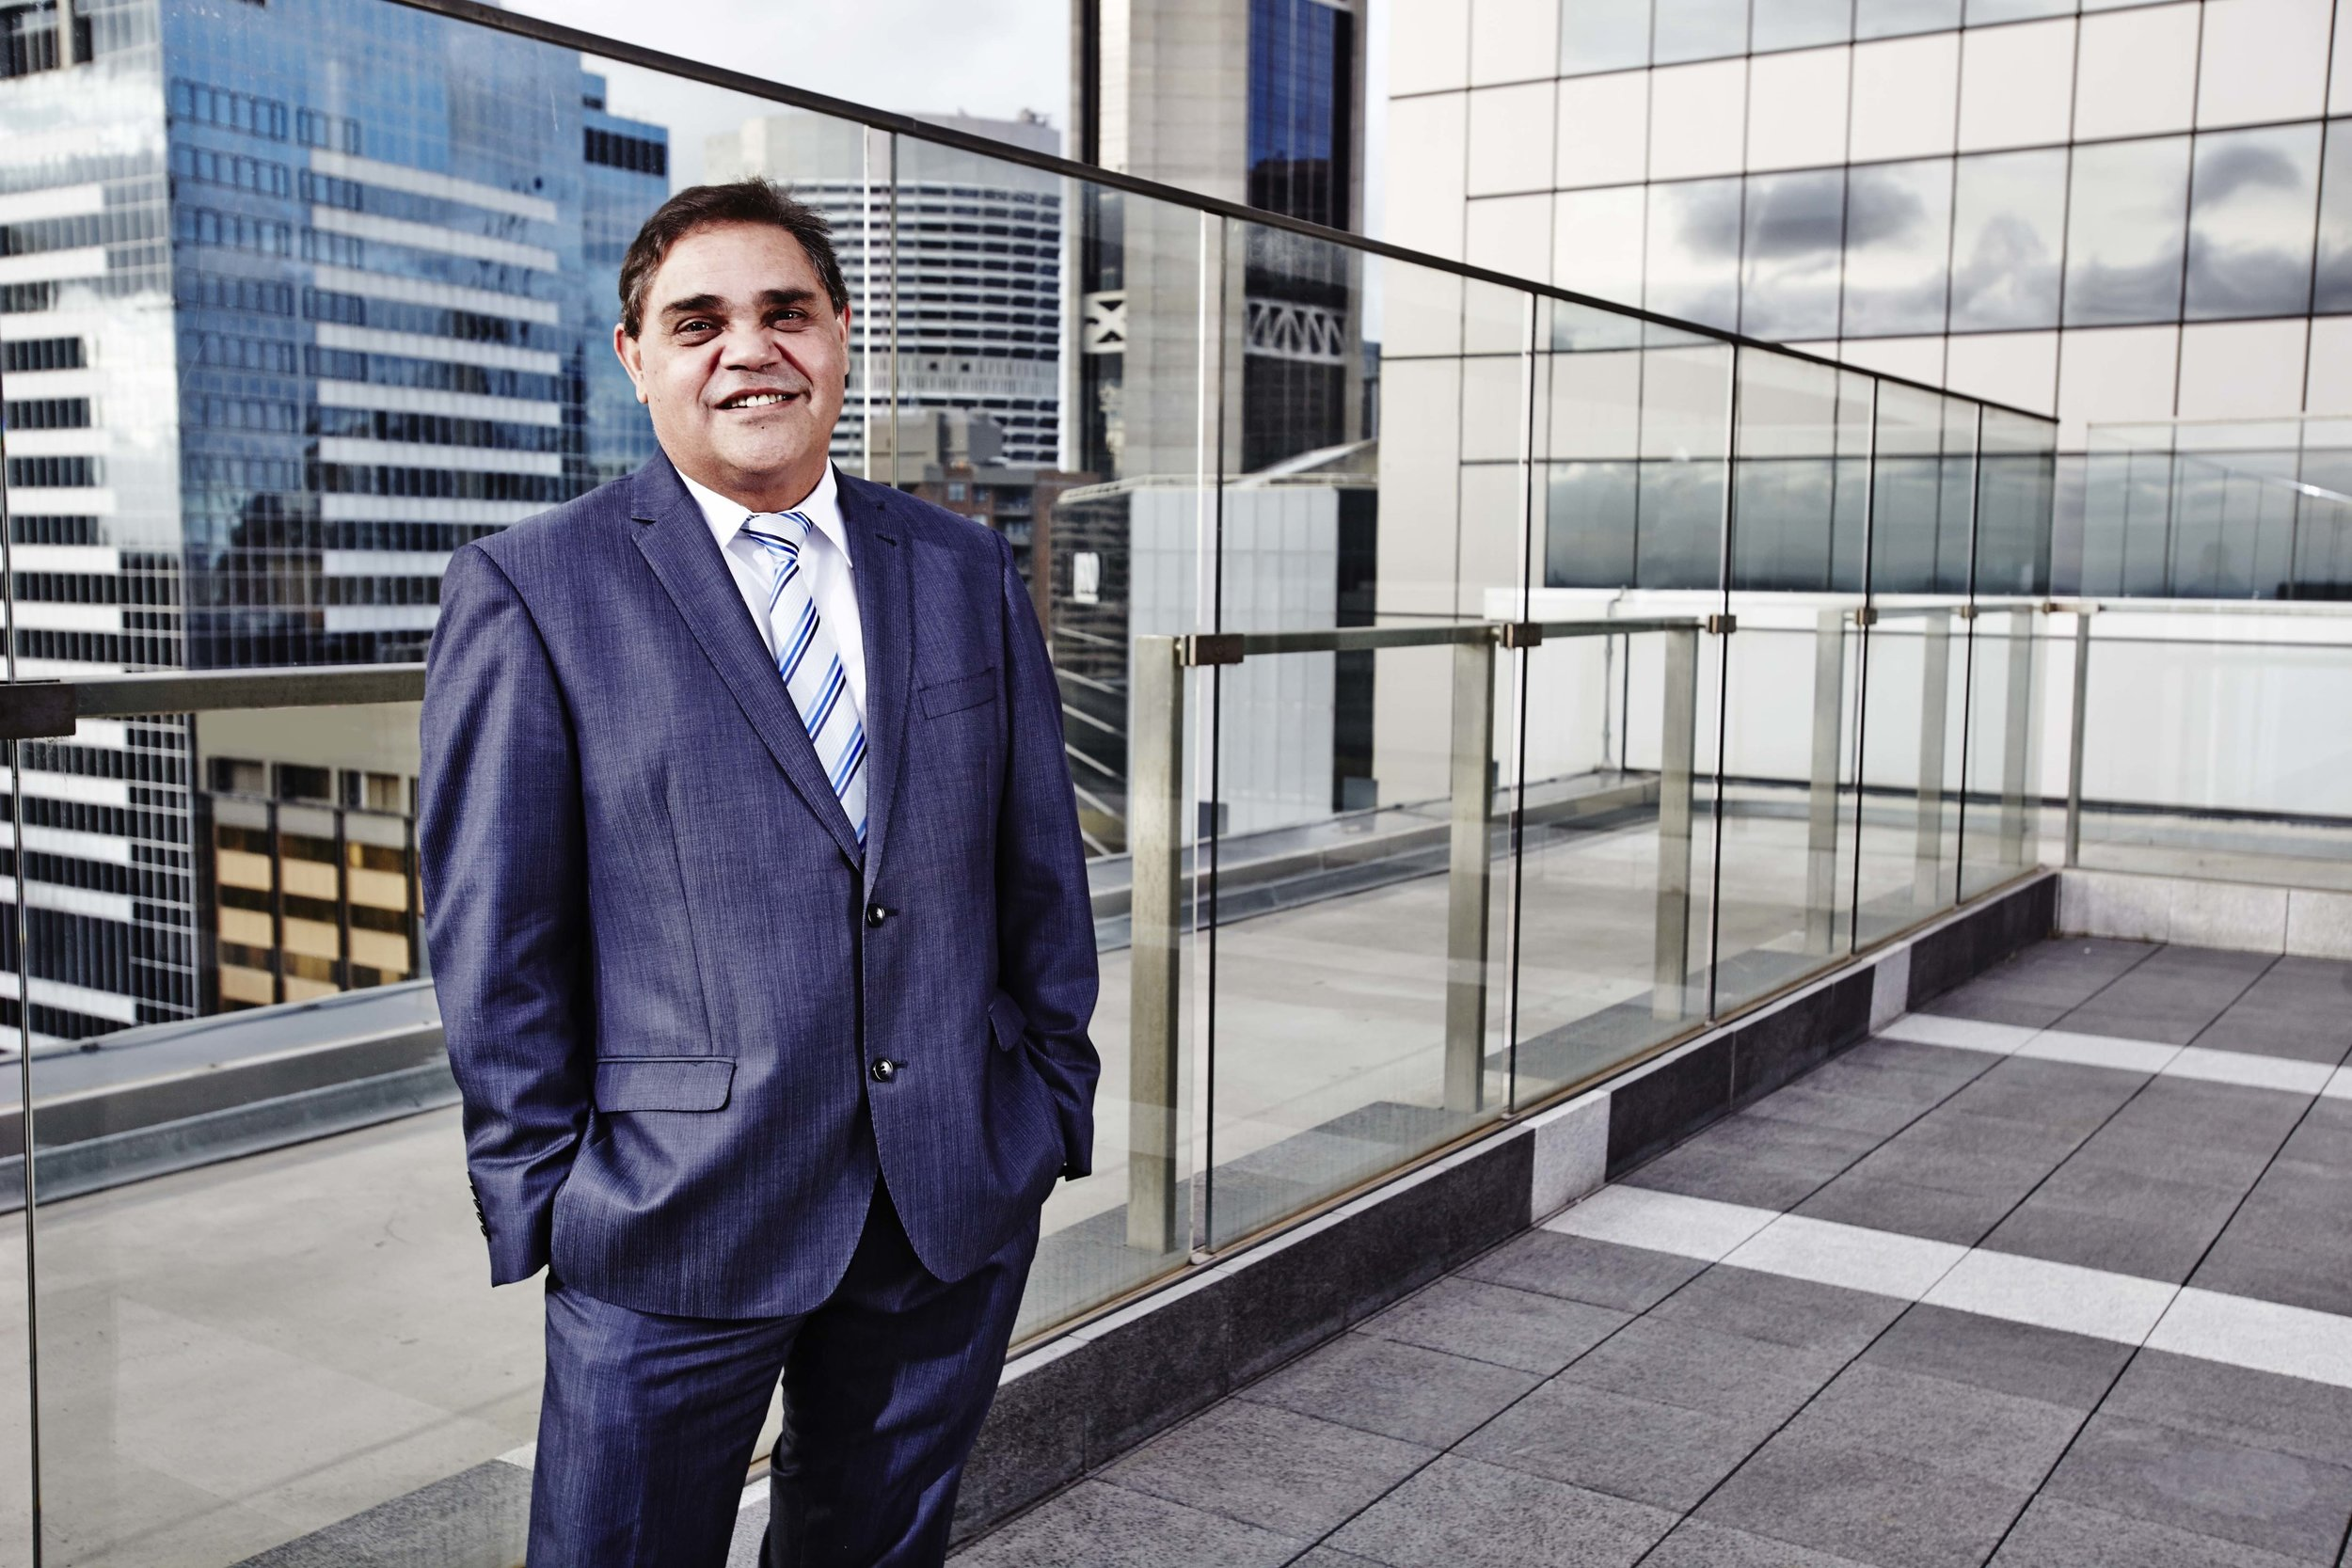 WESTPAC - INDIGENOUS LEADERS PORTRAITS